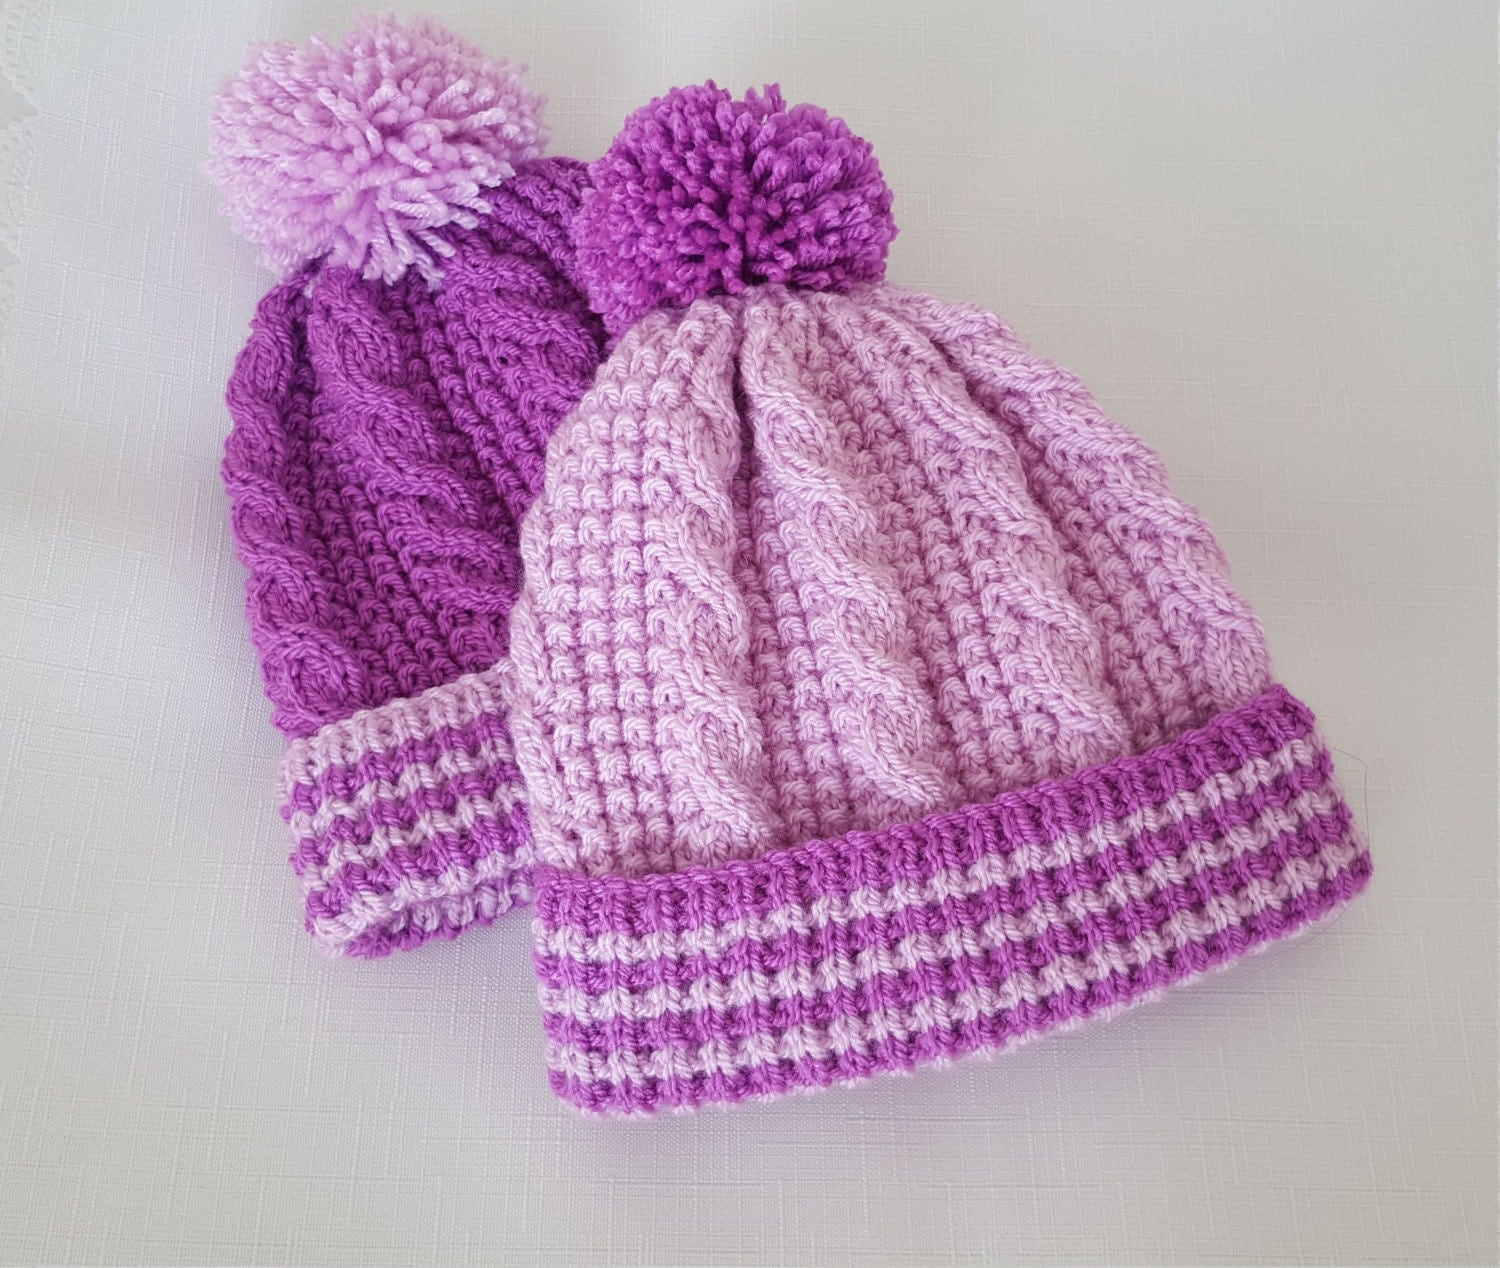 Knitting Patterns Baby Cable Hats : Baby Knitting Pattern Cable Baby Hat Download PDF